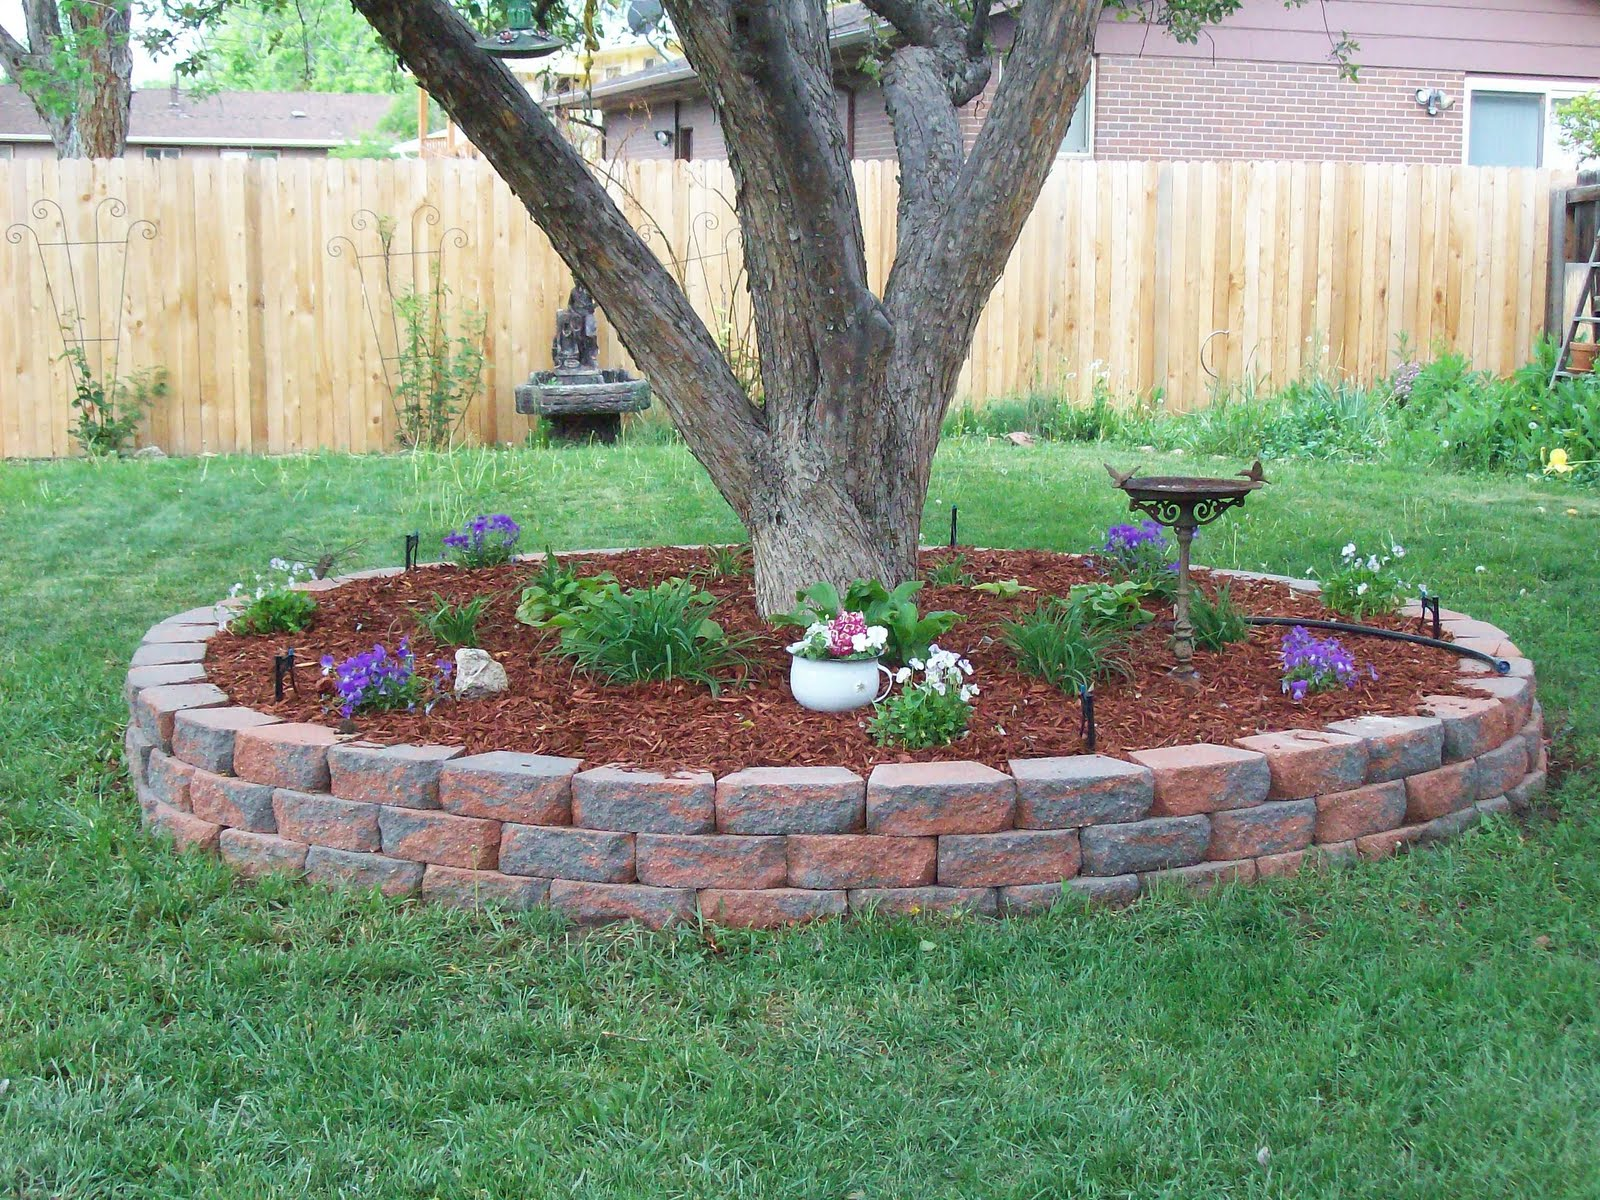 Landscaping Ideas Around Tree Trunks : Porter place cottage backyard photos